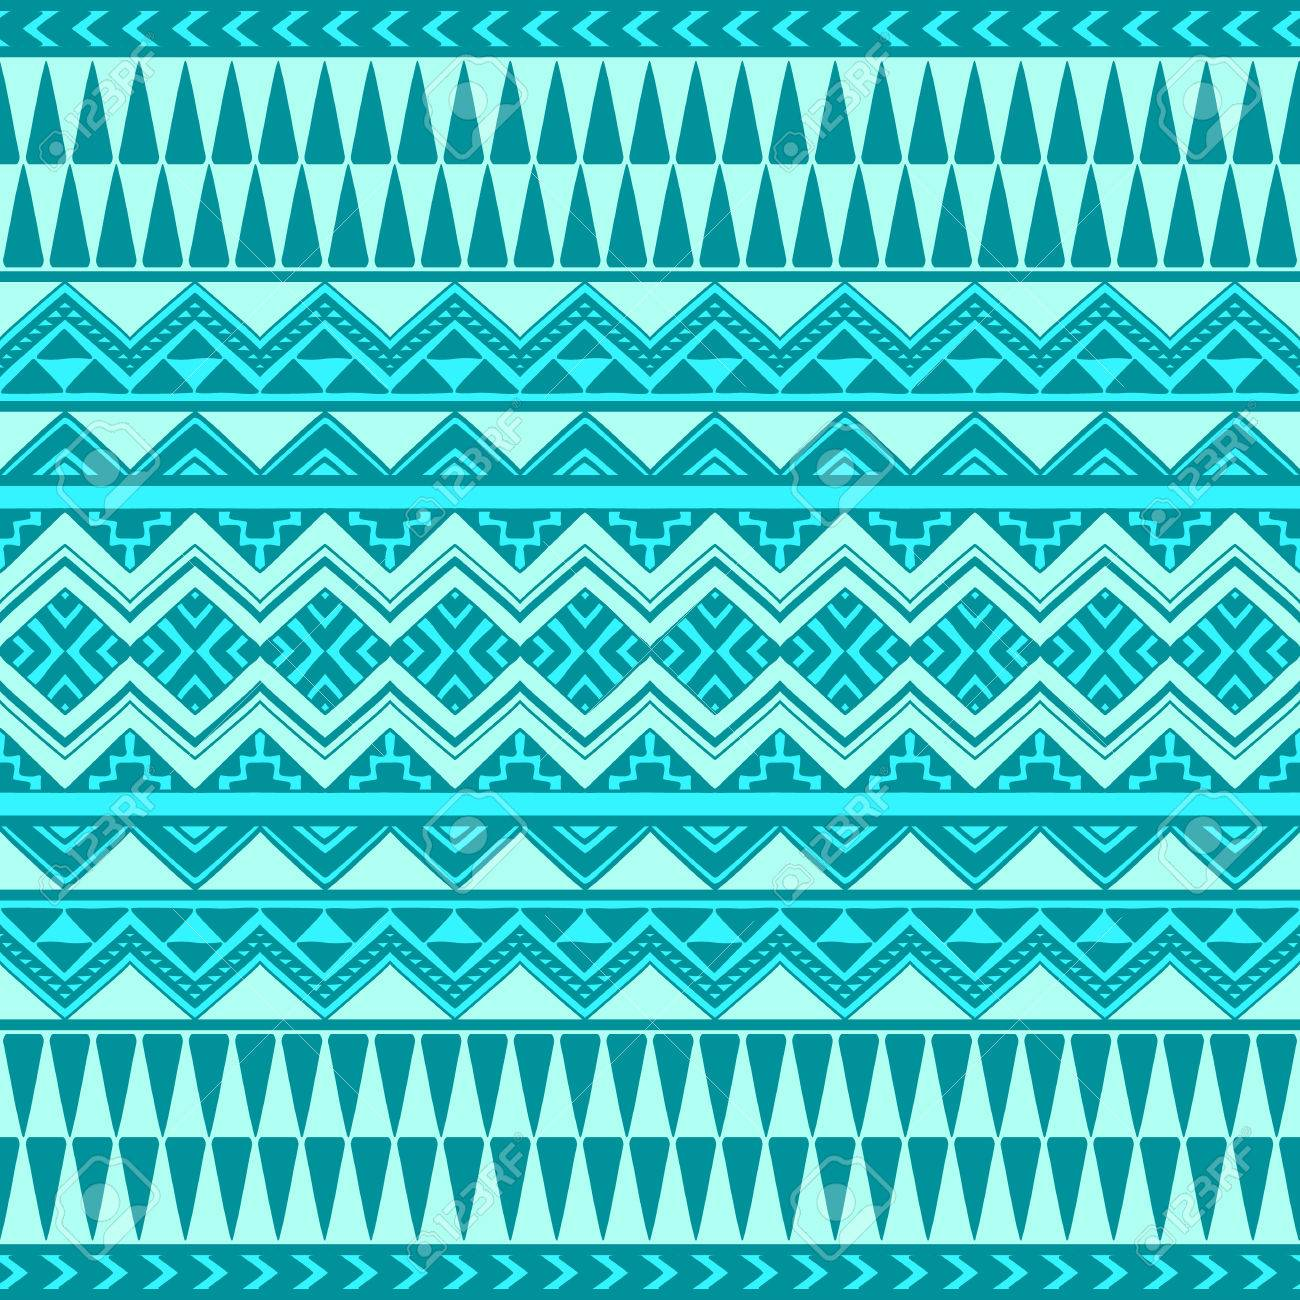 Seamless Boho Chic Pattern With Tribal Aztec Ornament In Blue